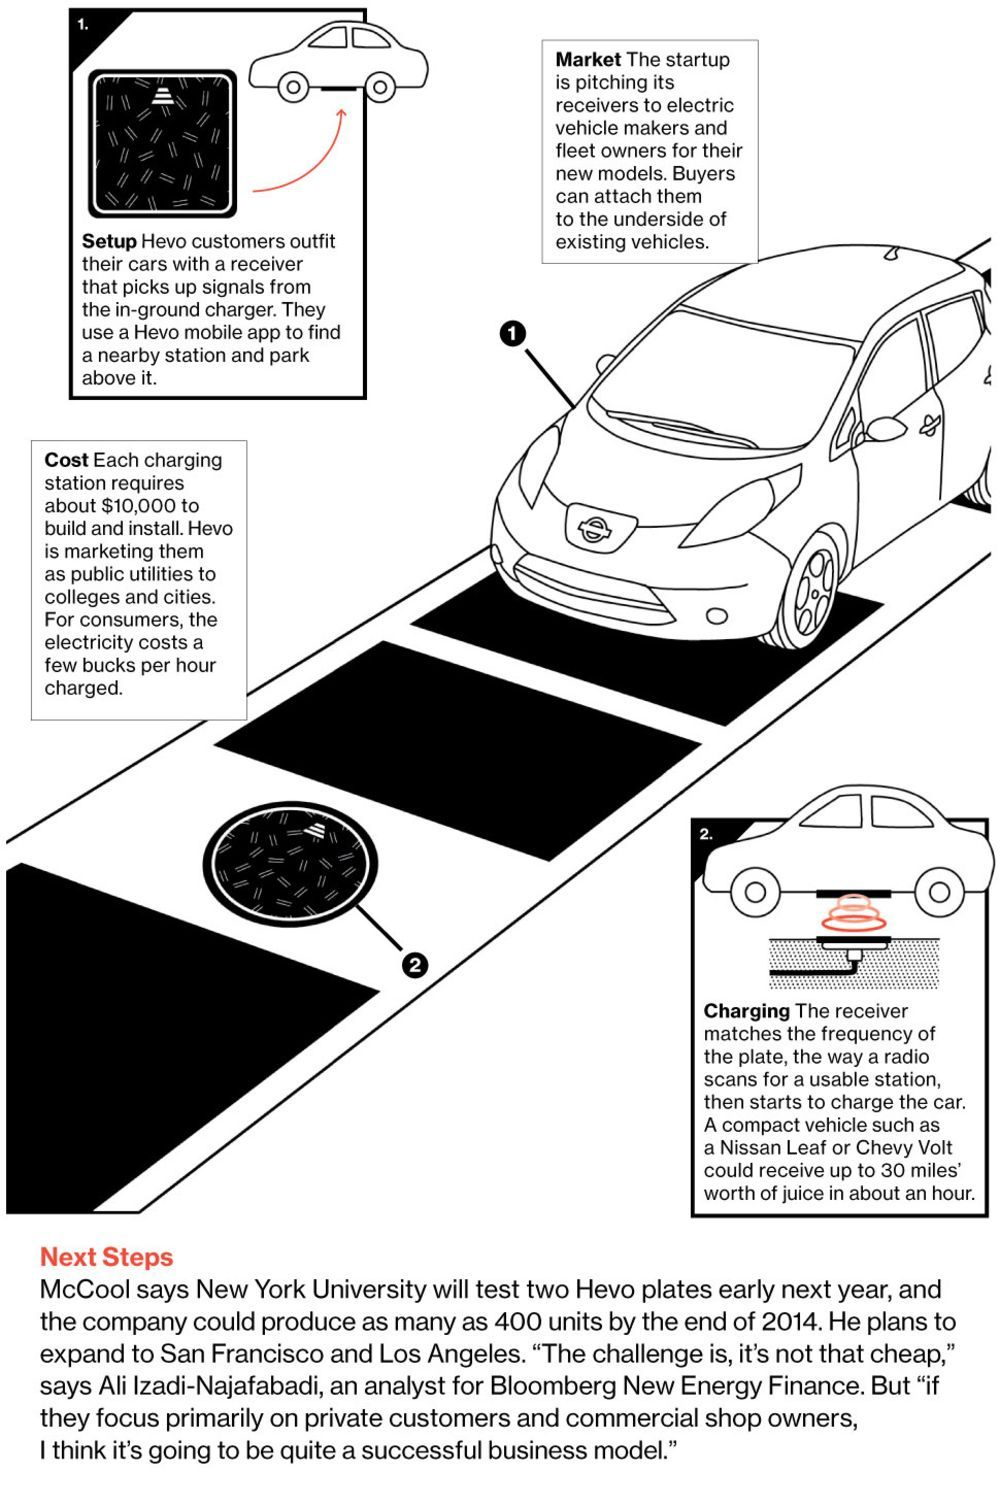 Charging Cars On The Fly Electric Car Charging Car Charging Stations Electric Vehicle Charging